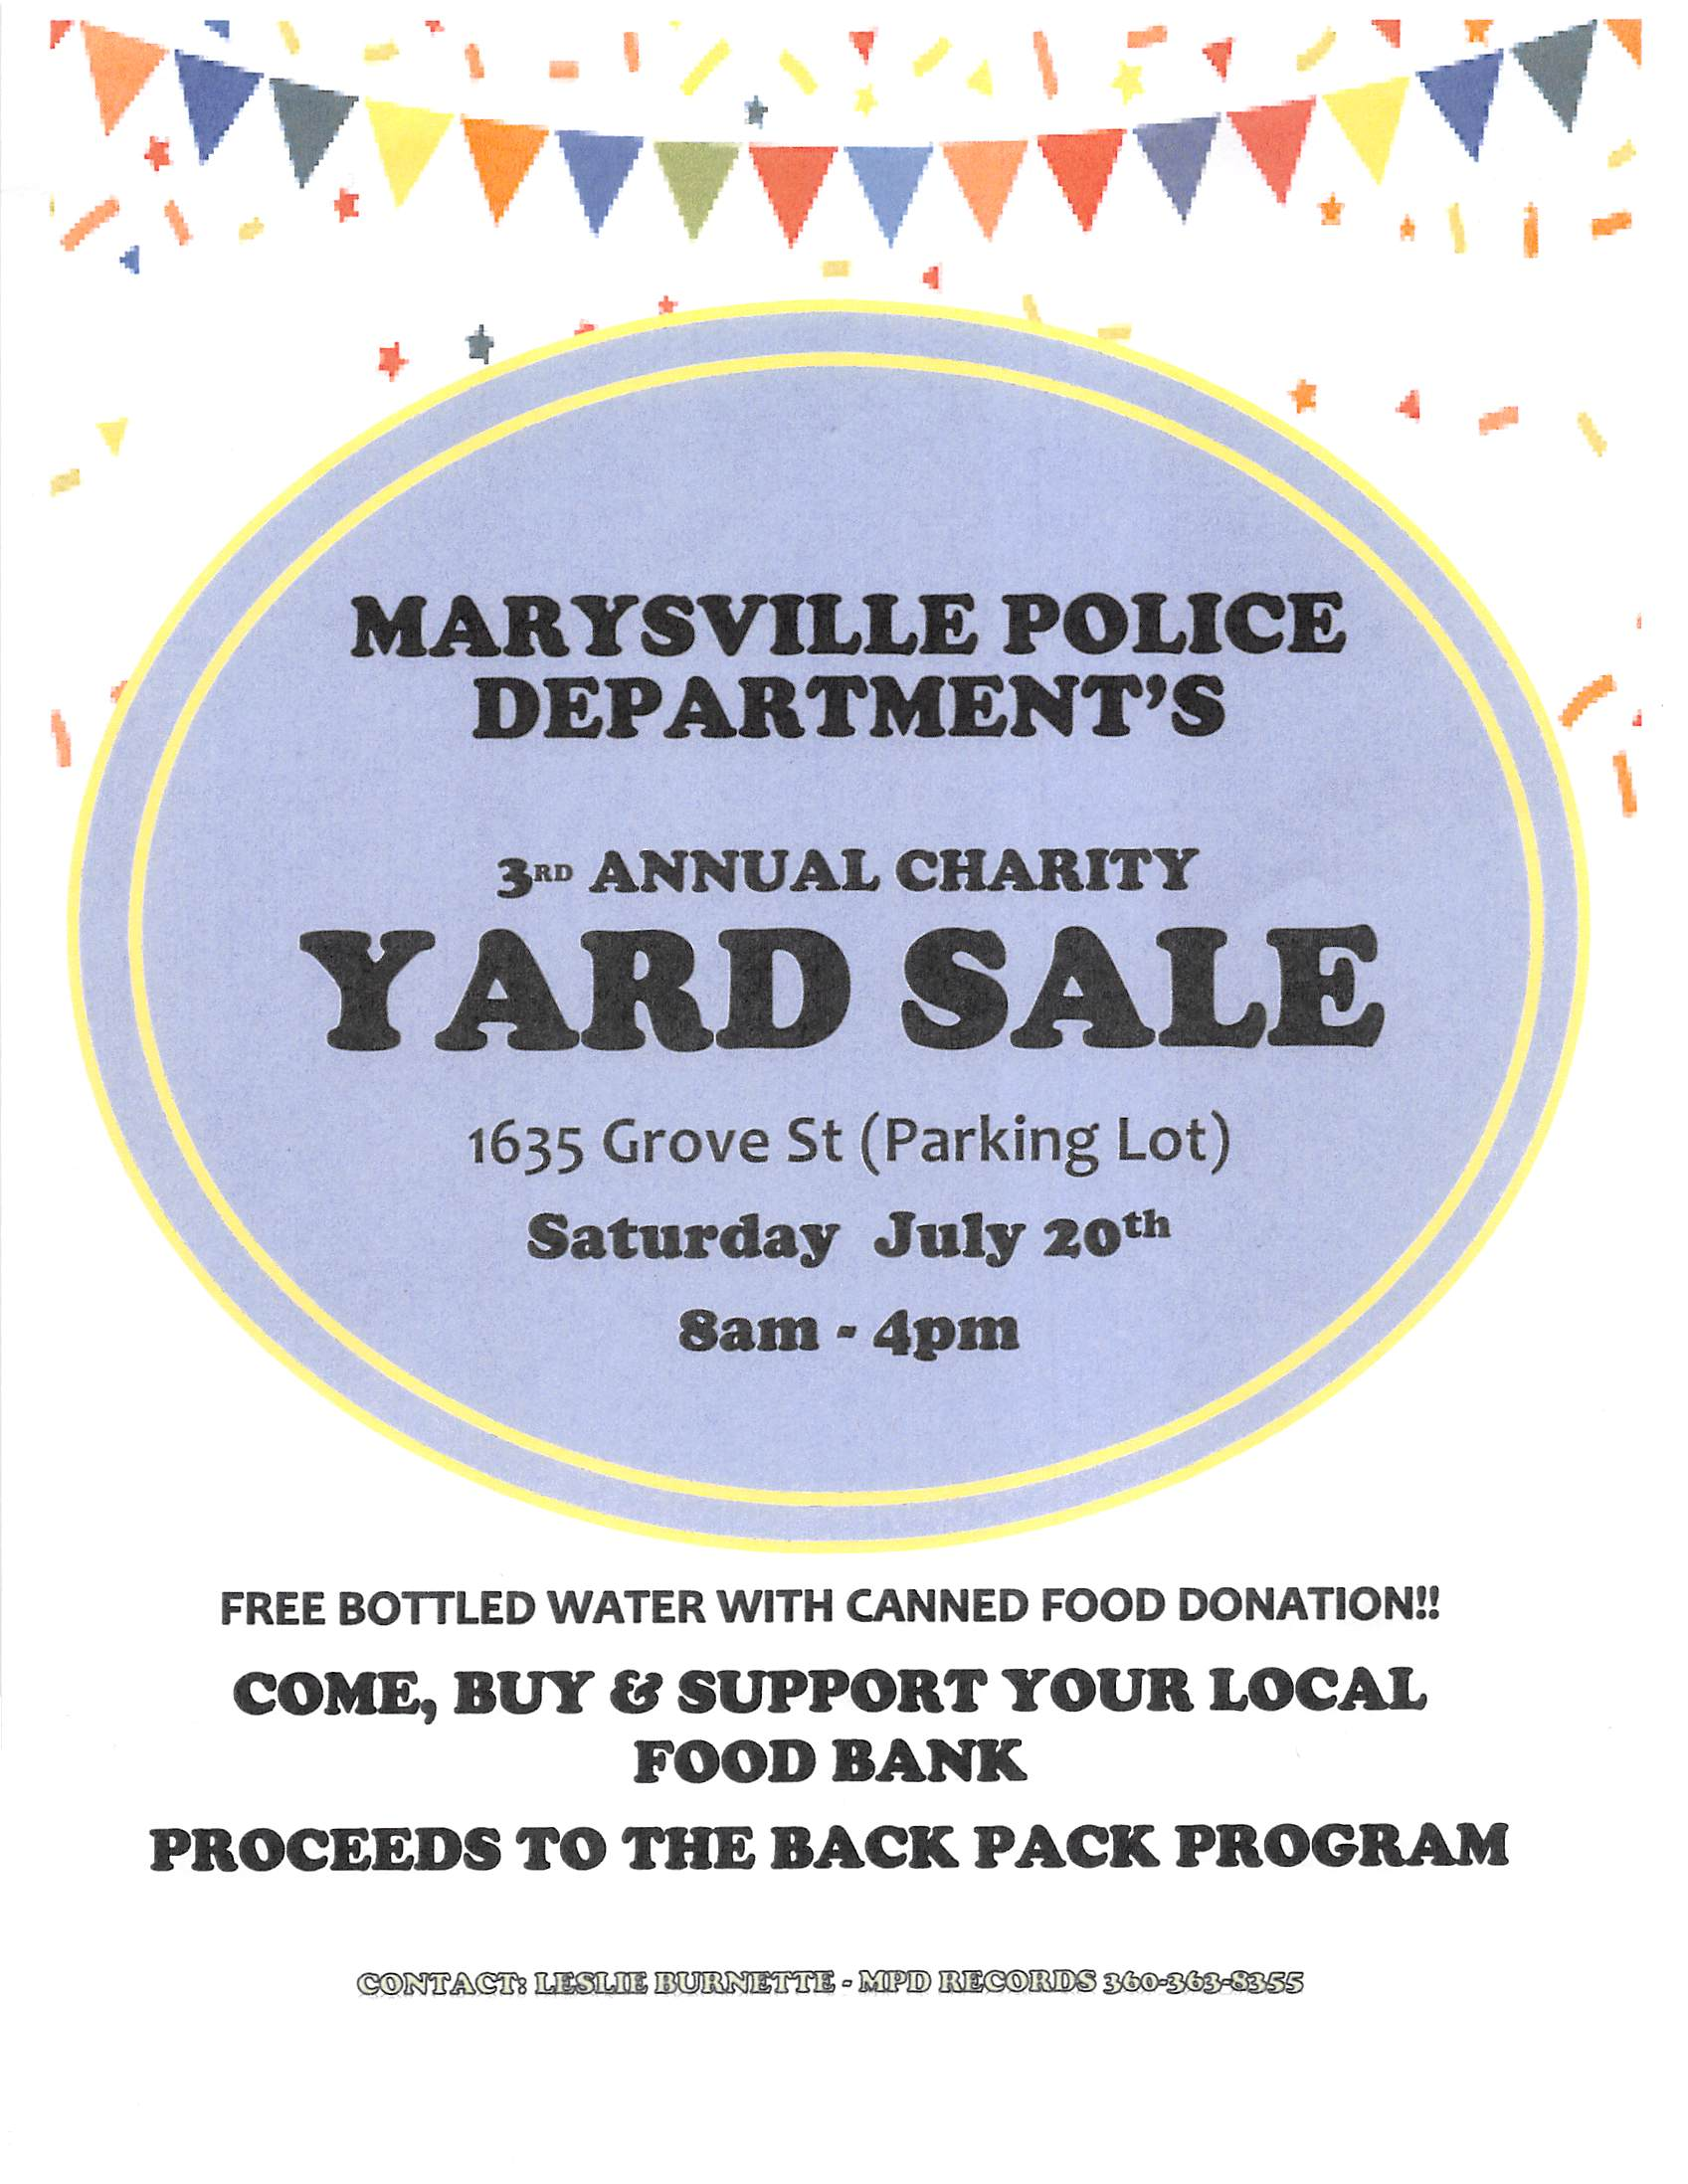 2019 CHARITY YARD SALE July 20 8 am-4 pm 1635 Grove St.